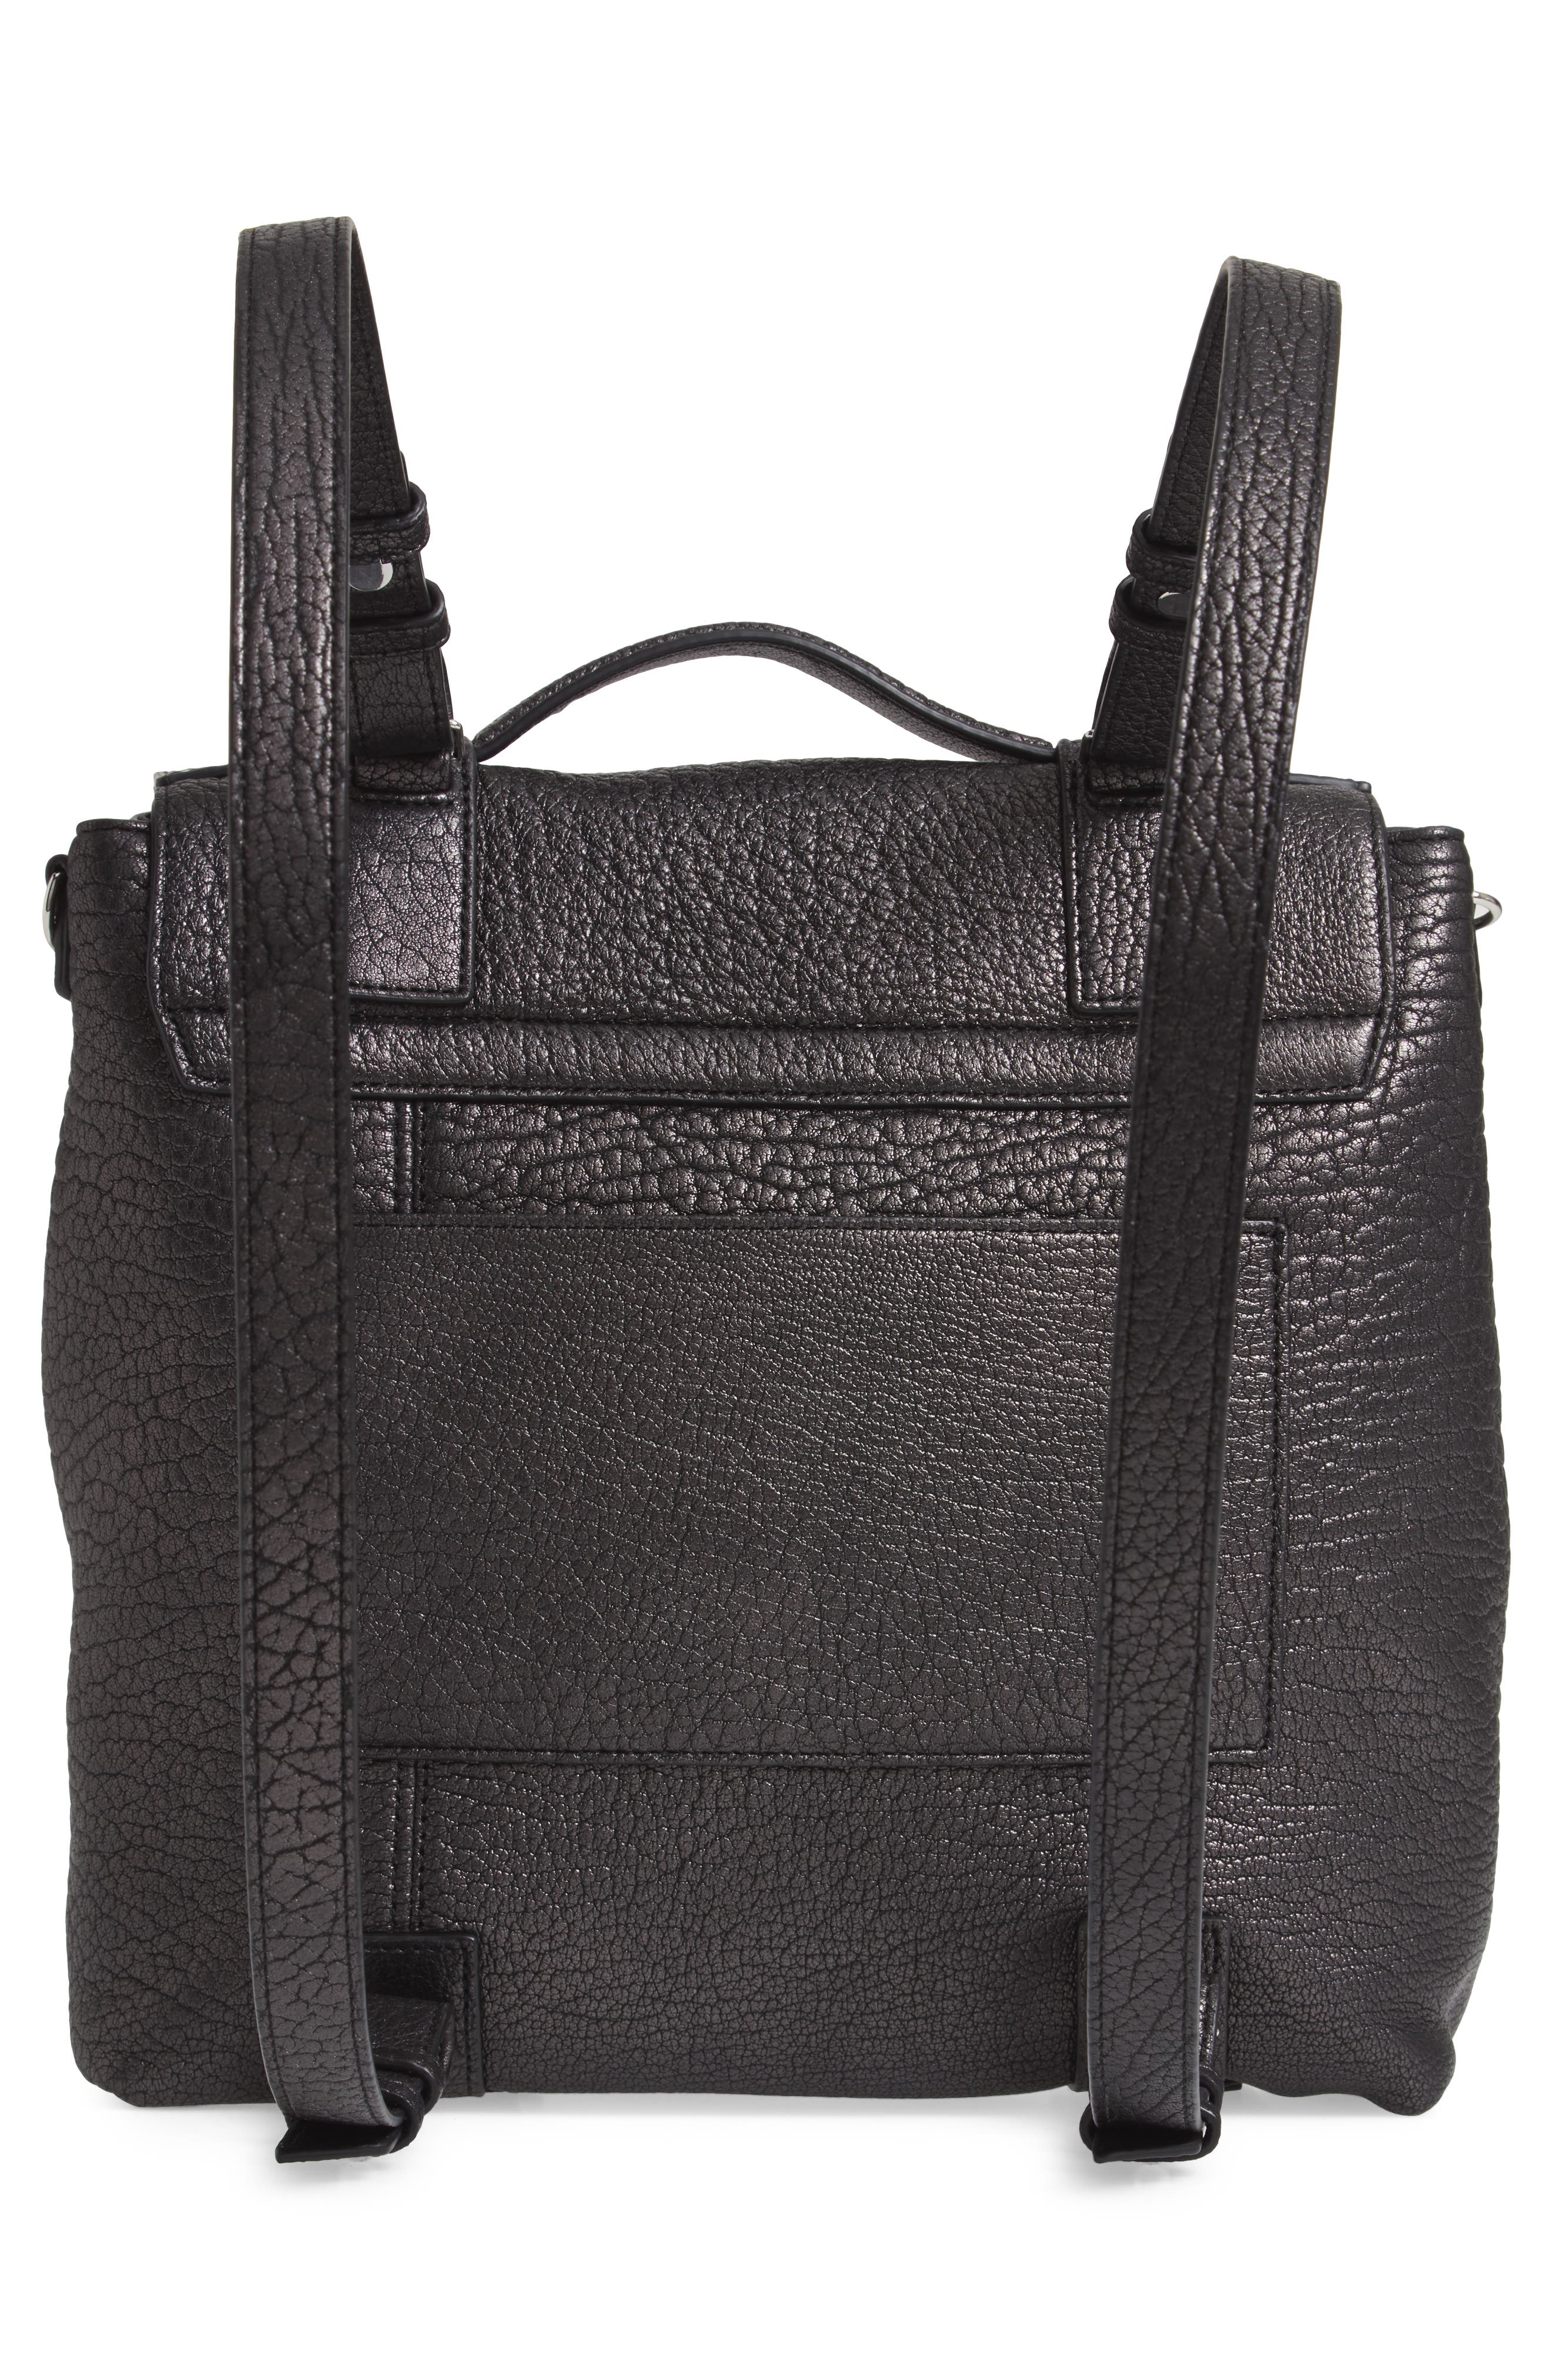 ALLSAINTS, Vincent Leather Backpack, Alternate thumbnail 5, color, 022